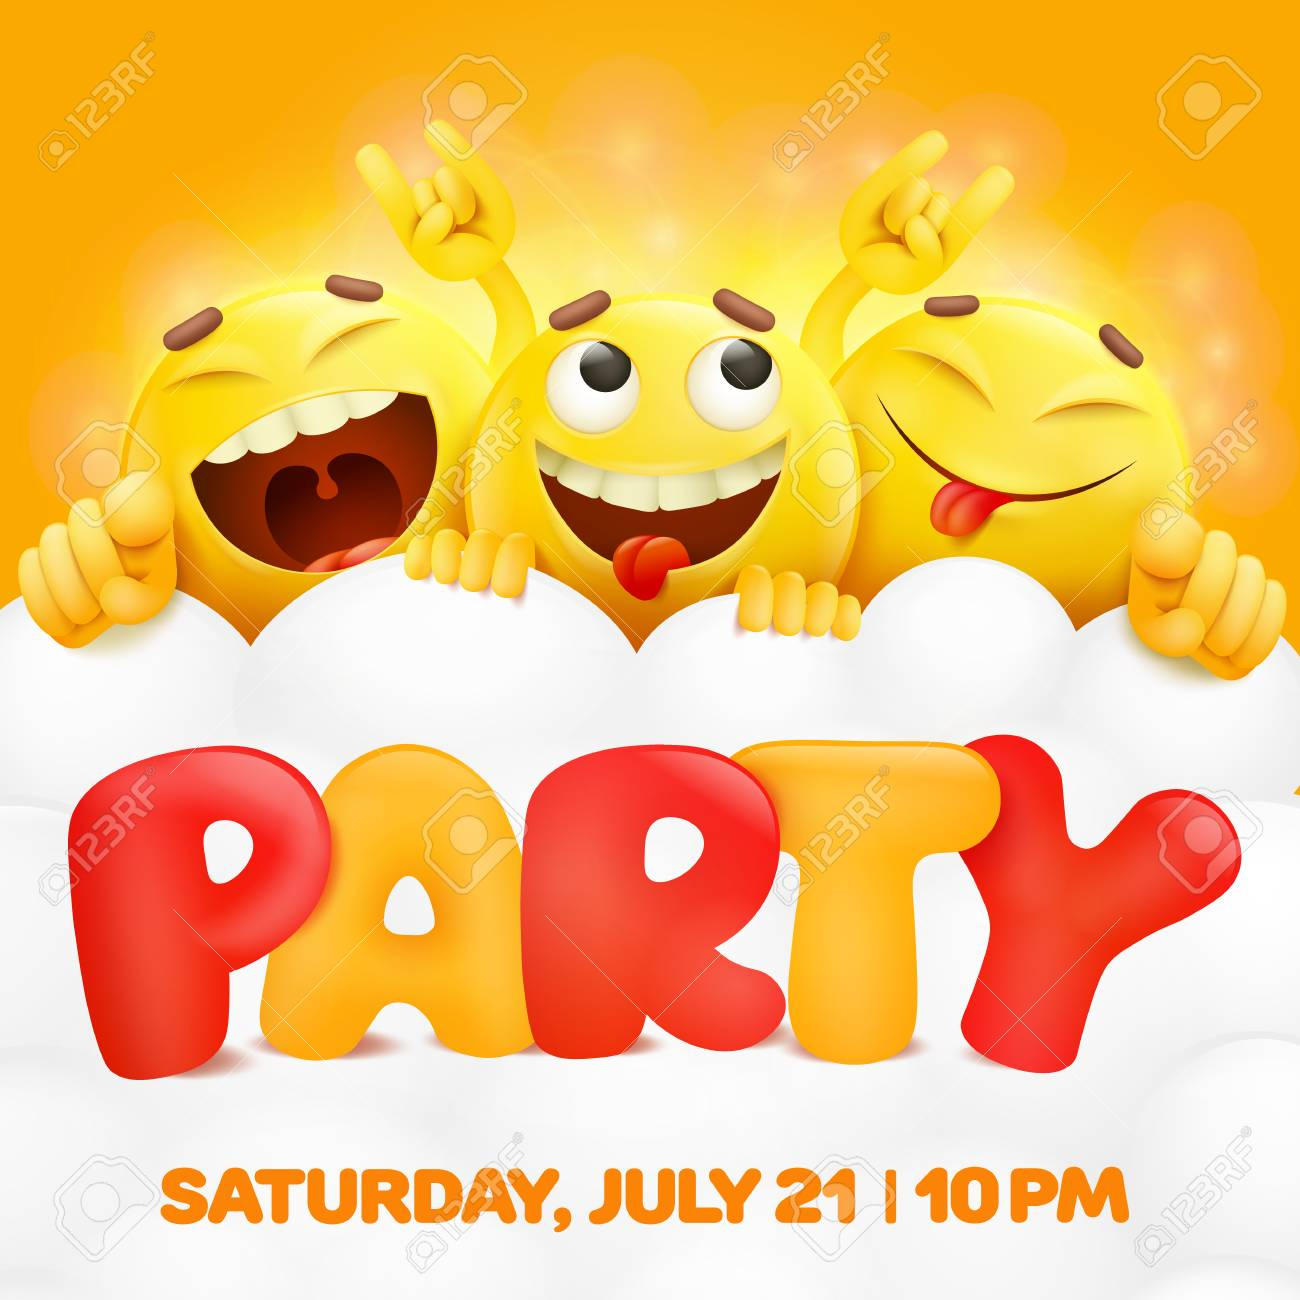 Party Invitation Card Template With Three Emoji Characters Vector